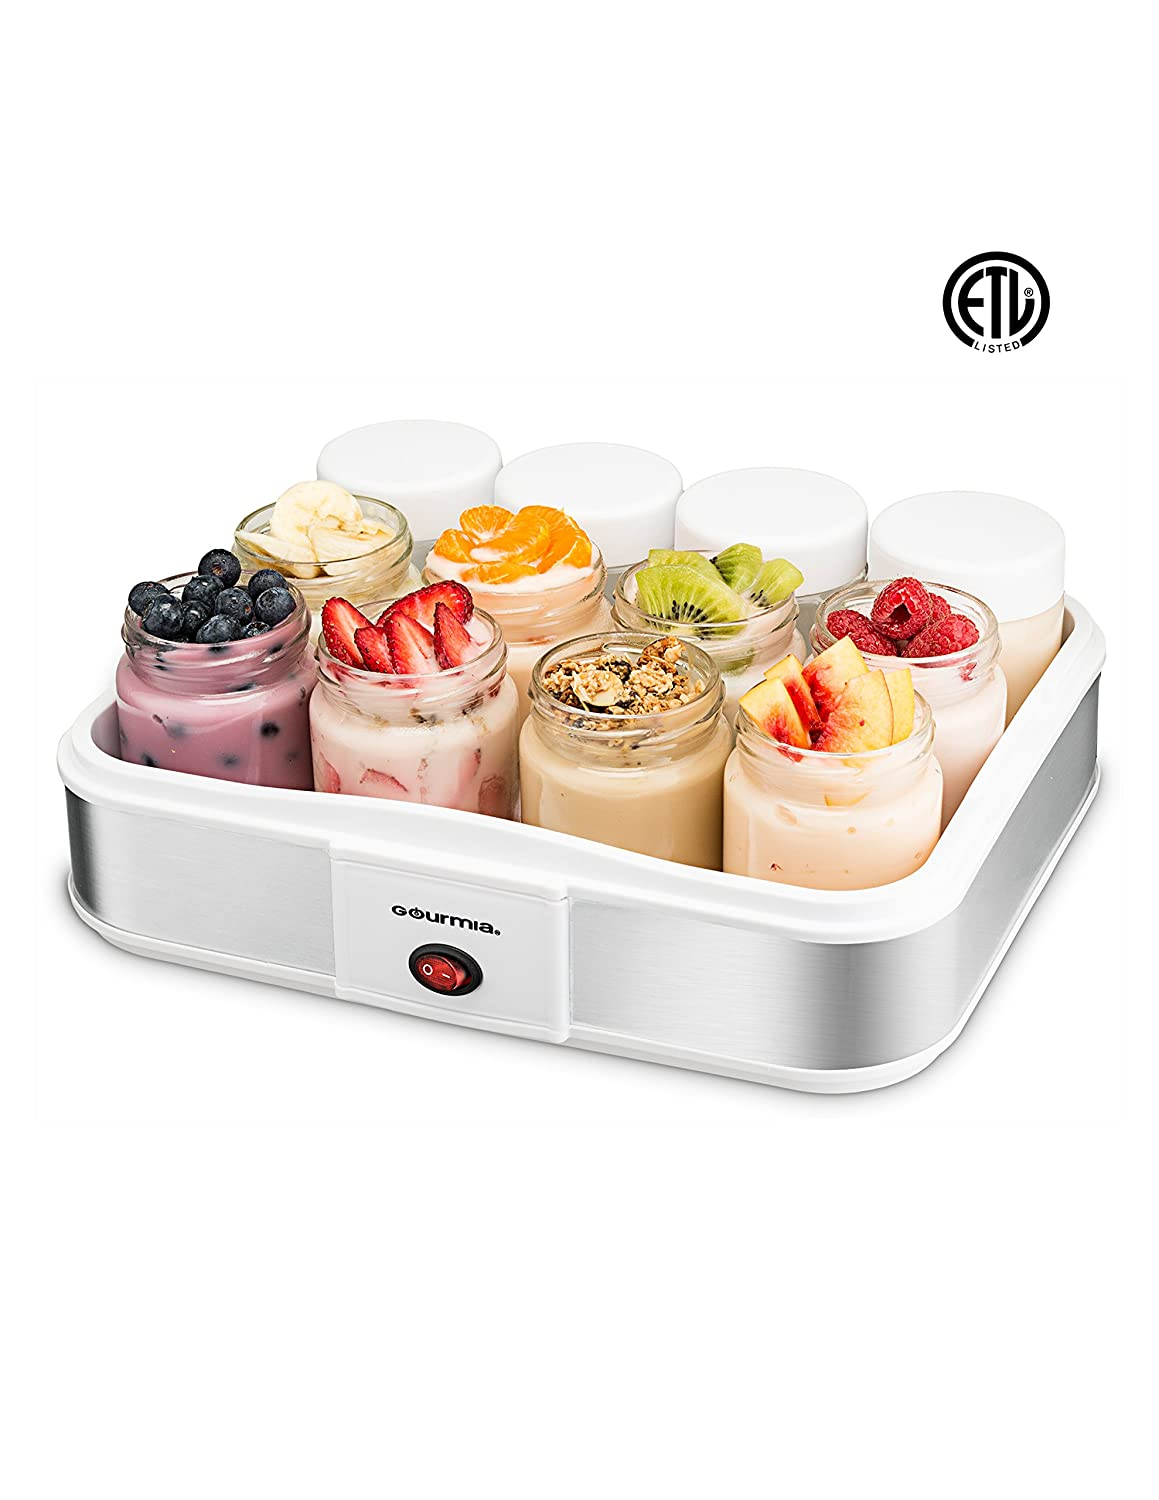 Gourmia GYM1710 Yogurt Maker with 12 Glass Jars Customize to Your Flavor and Thickness, Free Recipe Book Included.